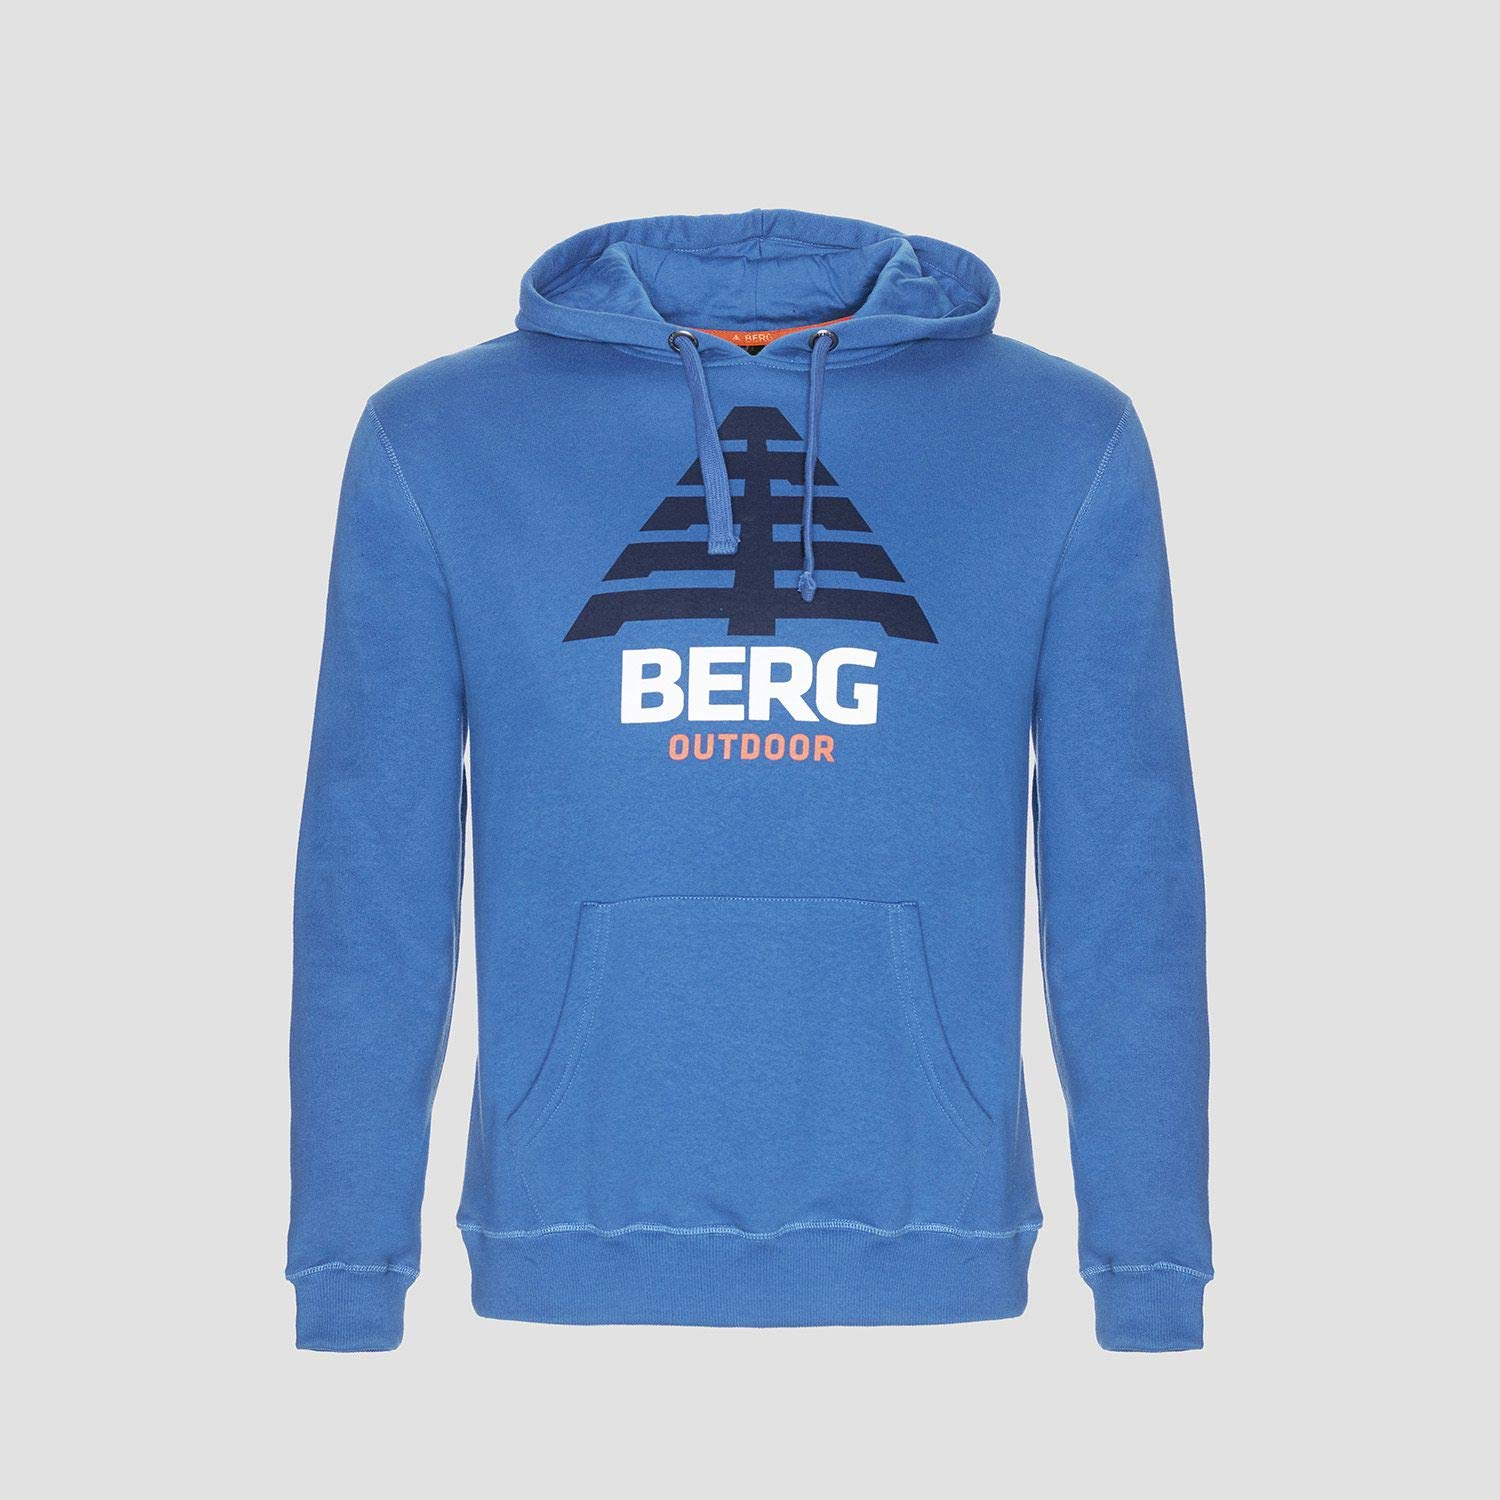 BERG OUTDOOR Herren Estrela Hooded Sweatshirt